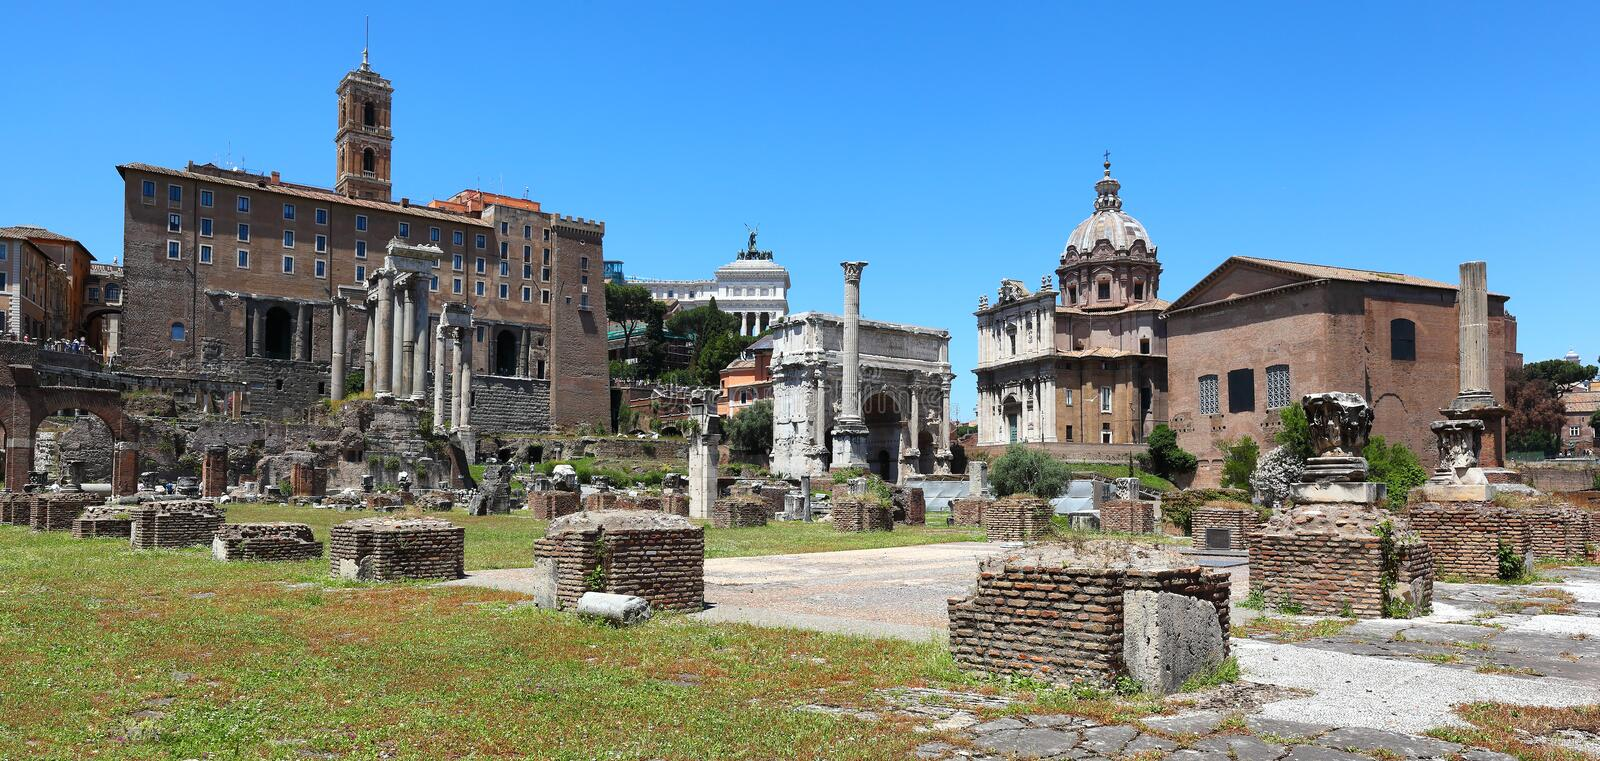 The ancient Forum, Rome - Italy. Panoramic view of the Roman Forum looking towards the Remains of the Temple of Saturn, the Arch of Septimus Severus, and the stock photography